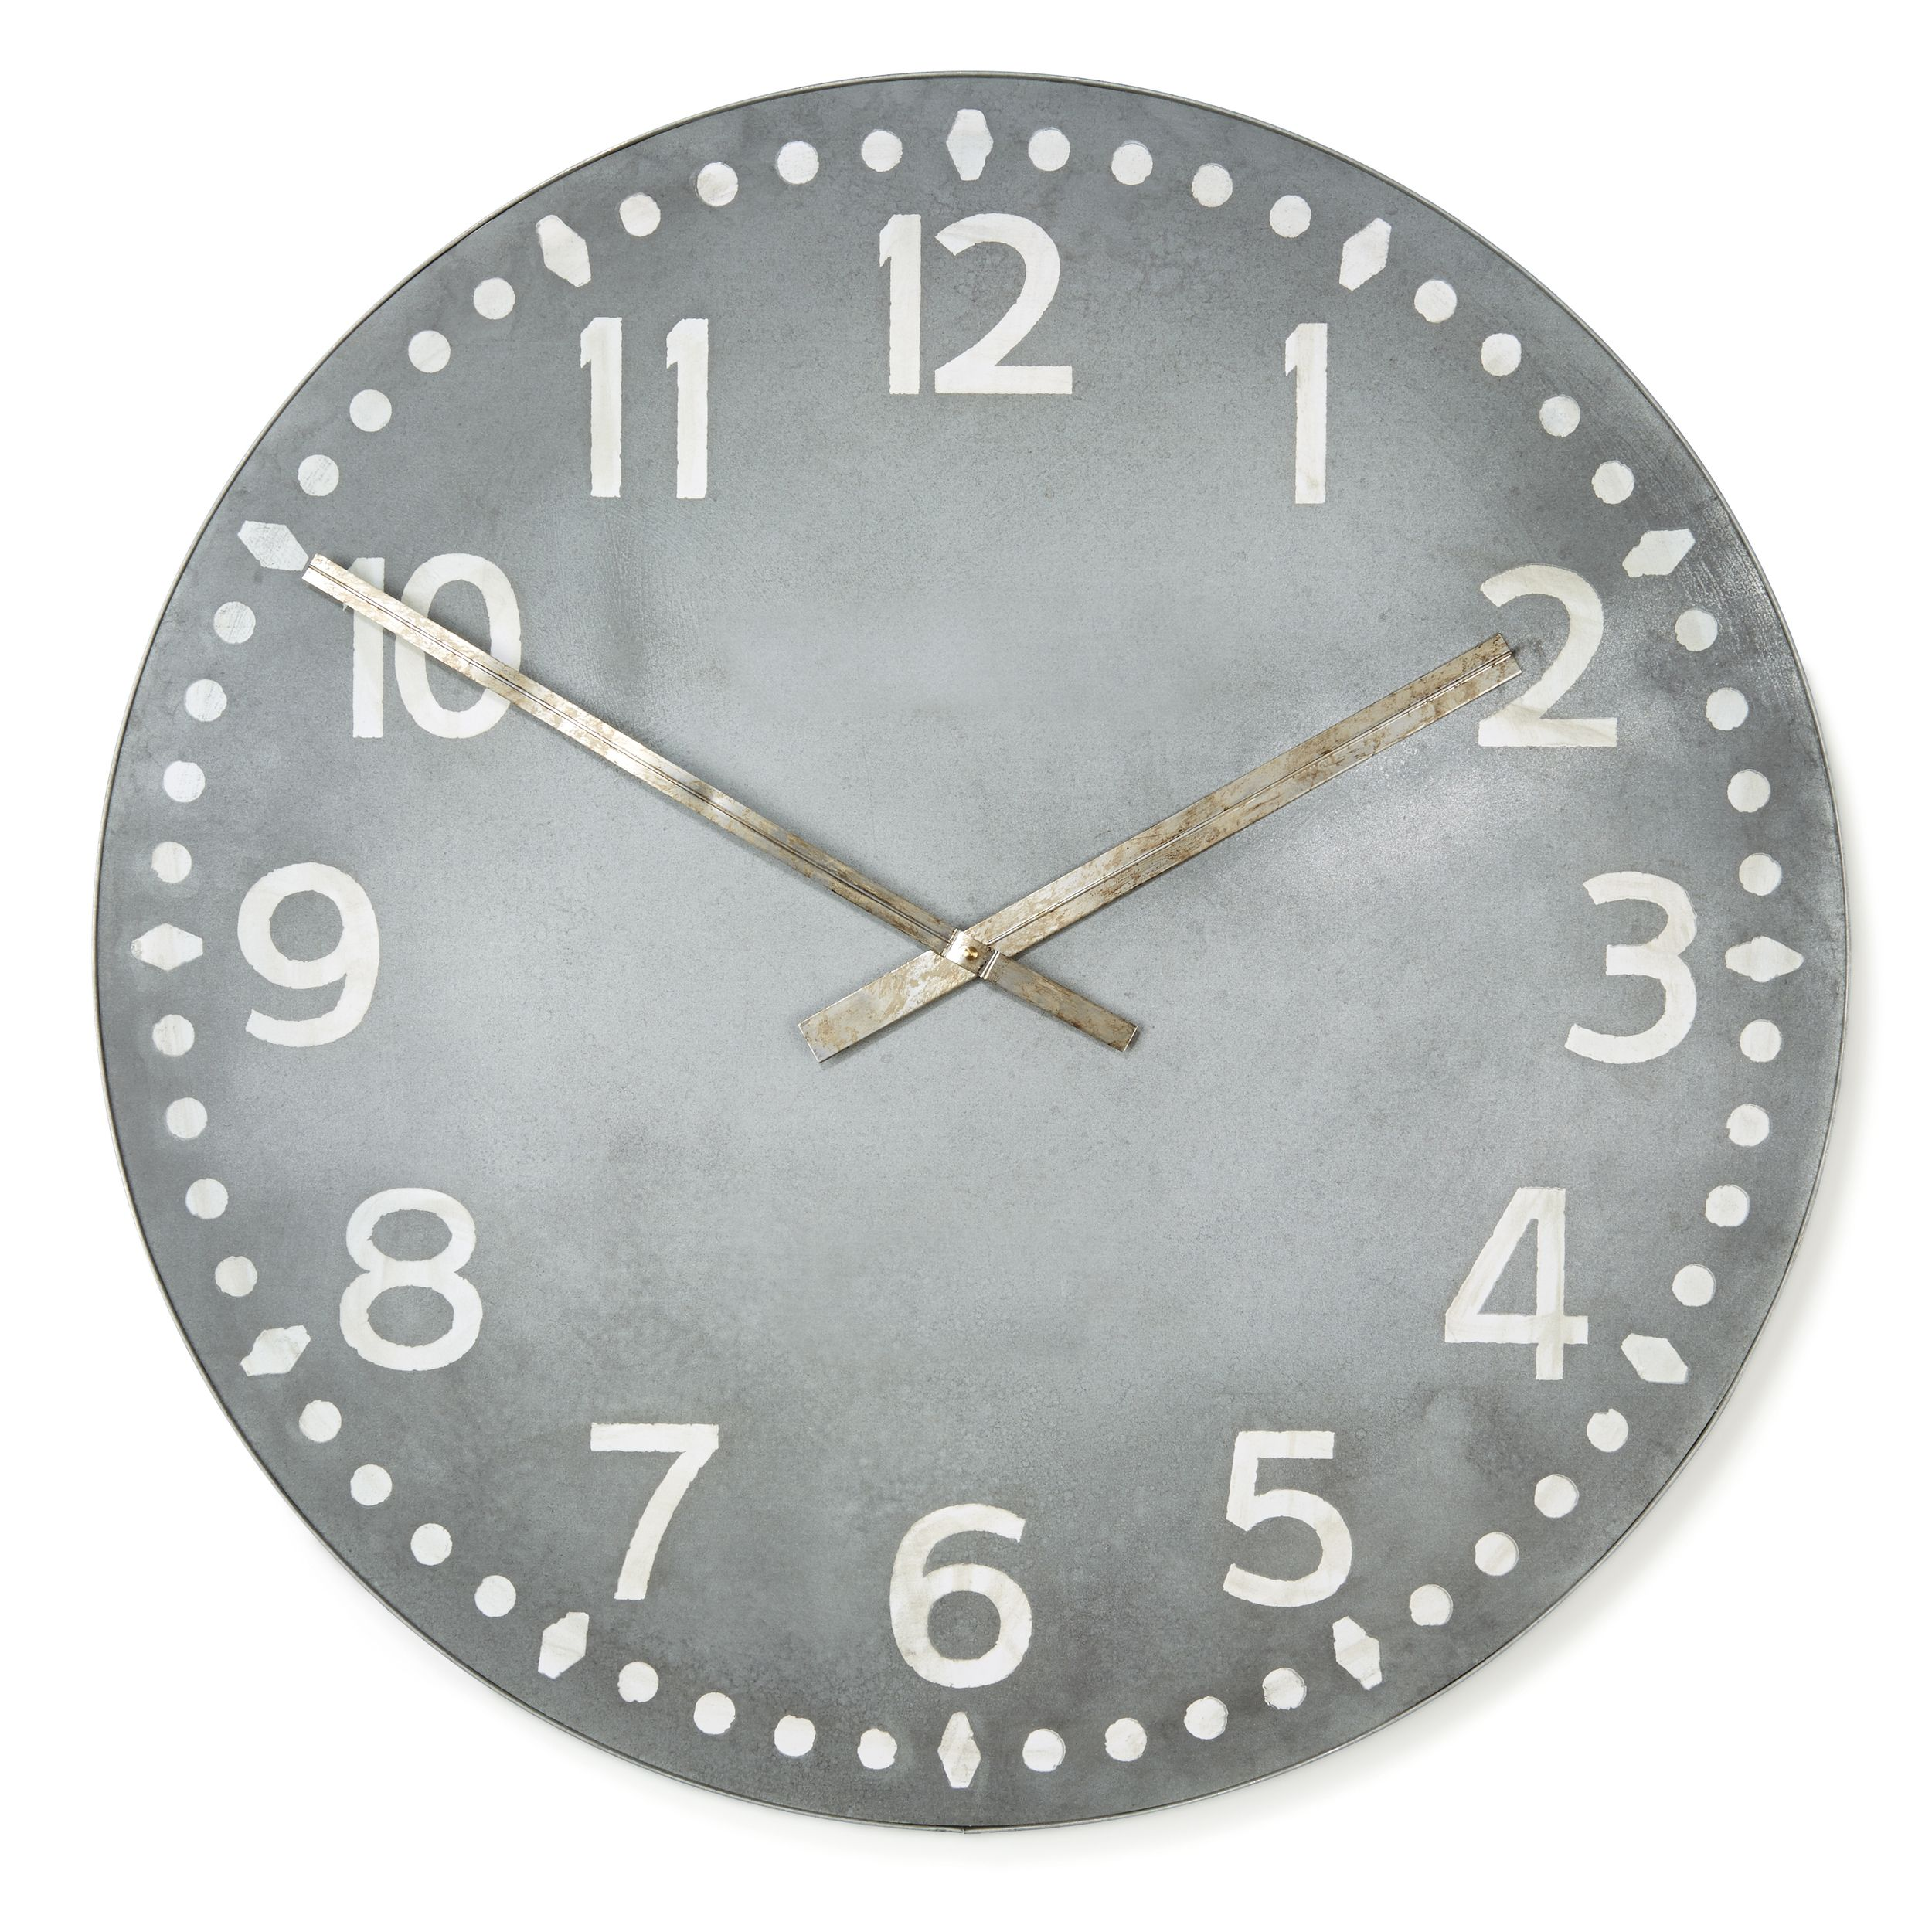 Loft Grey Wall Clock 76cm Diameter Grey Wall Clocks